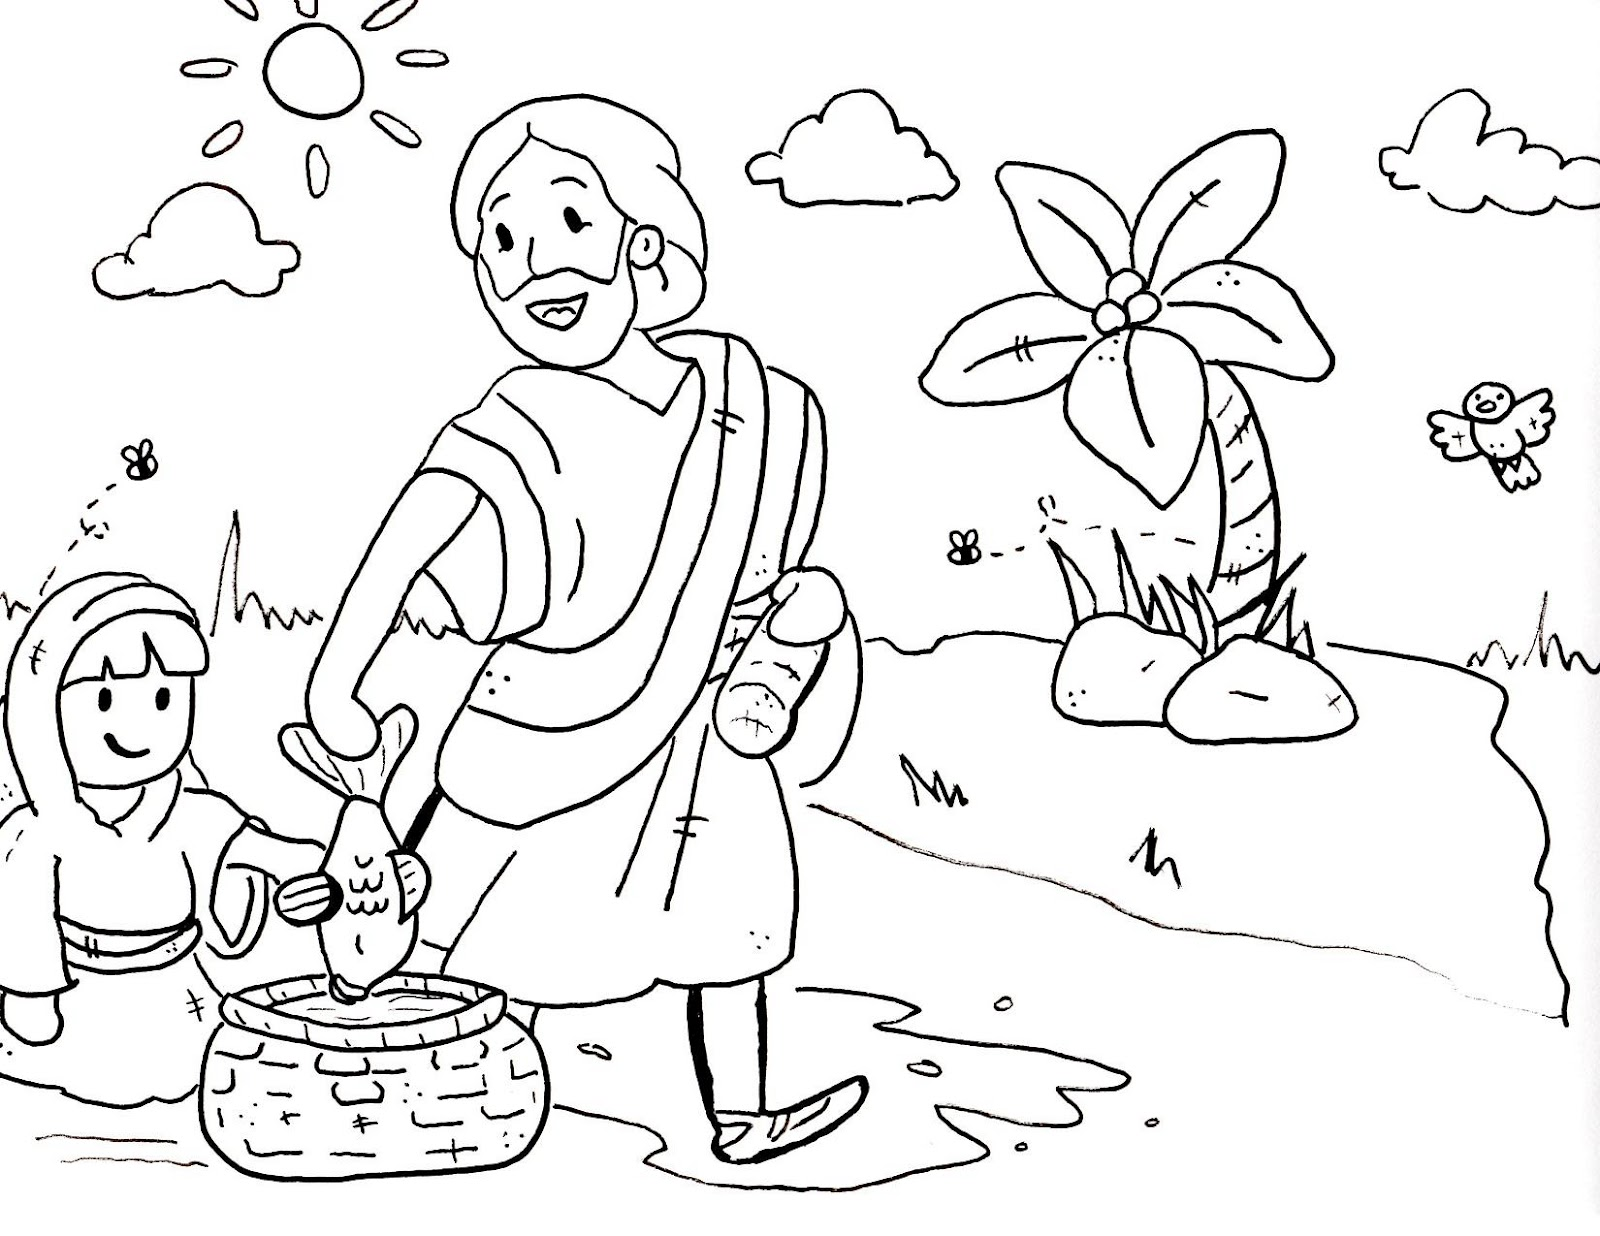 Free Printable Christian Coloring Pages For Preschoolers ... | bible coloring pages for preschoolers